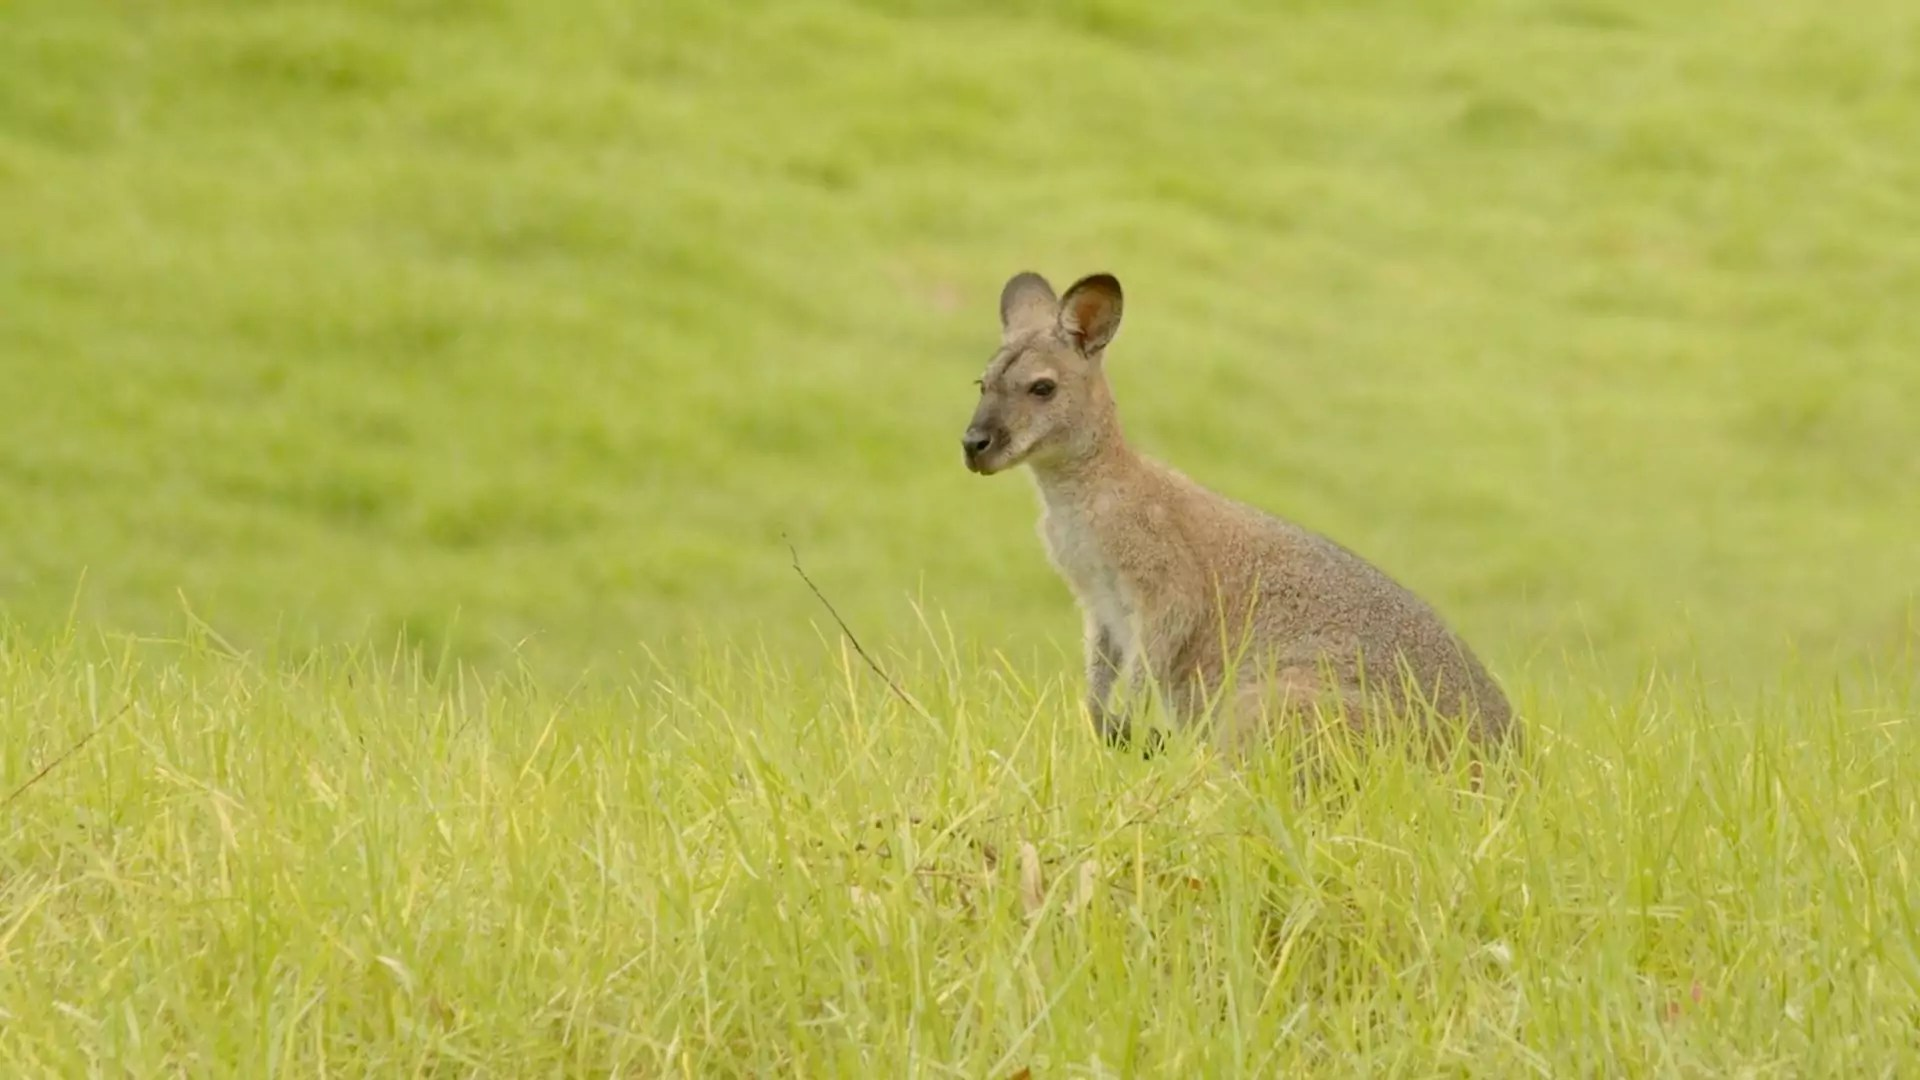 A kangaroo stops and waits in the middle of a bright, grassy field.